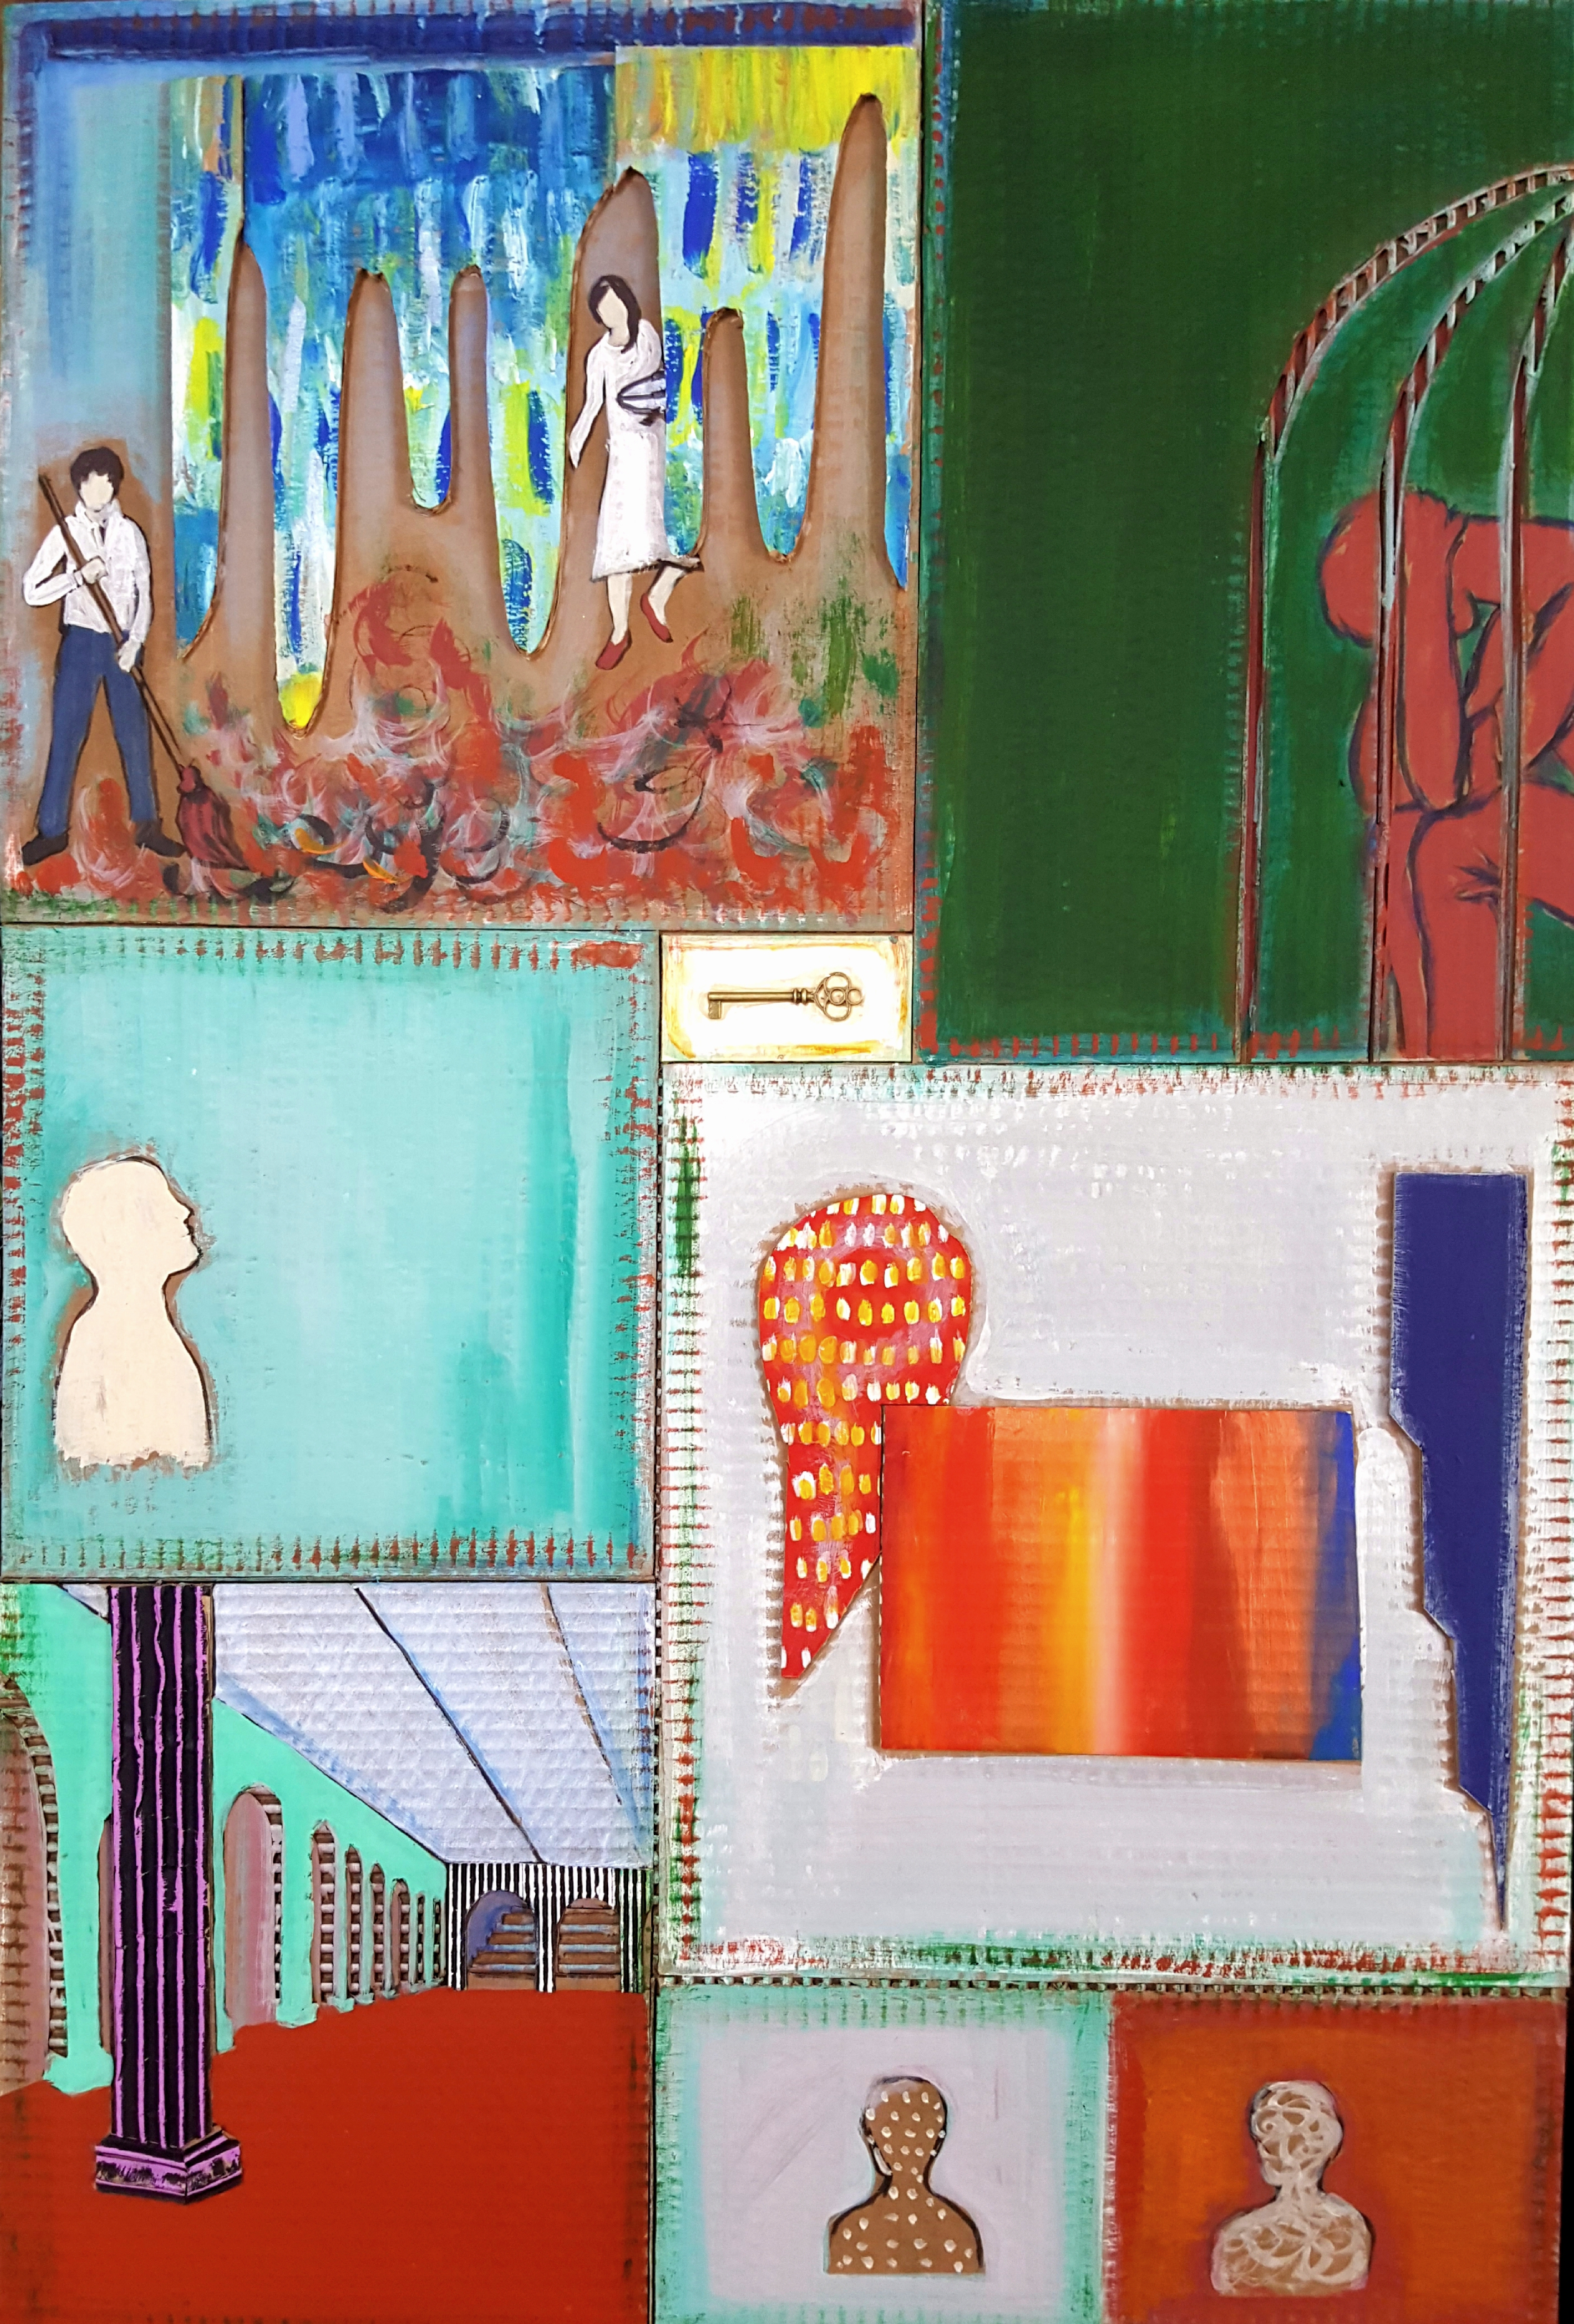 The Interpreter's Parlor 36x24inches mixed media 2018